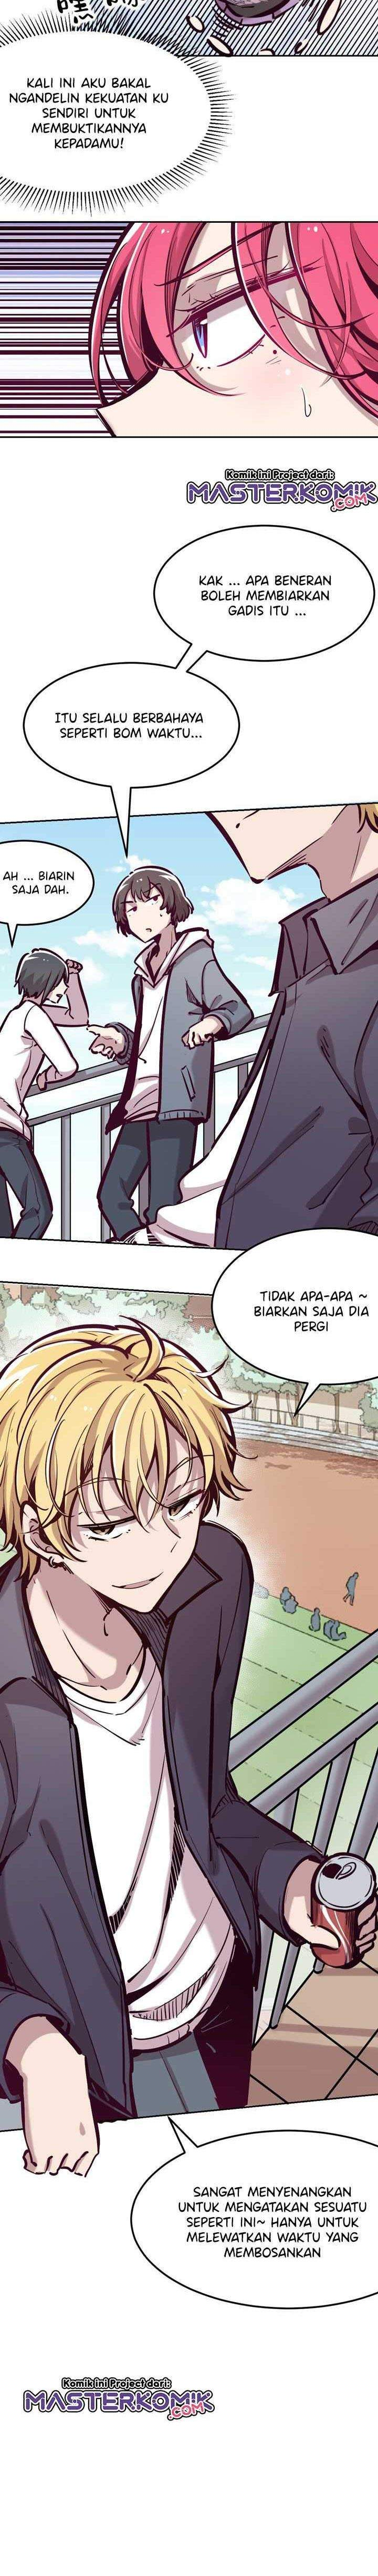 Demon X Angel, Can't Get Along! Chapter 24